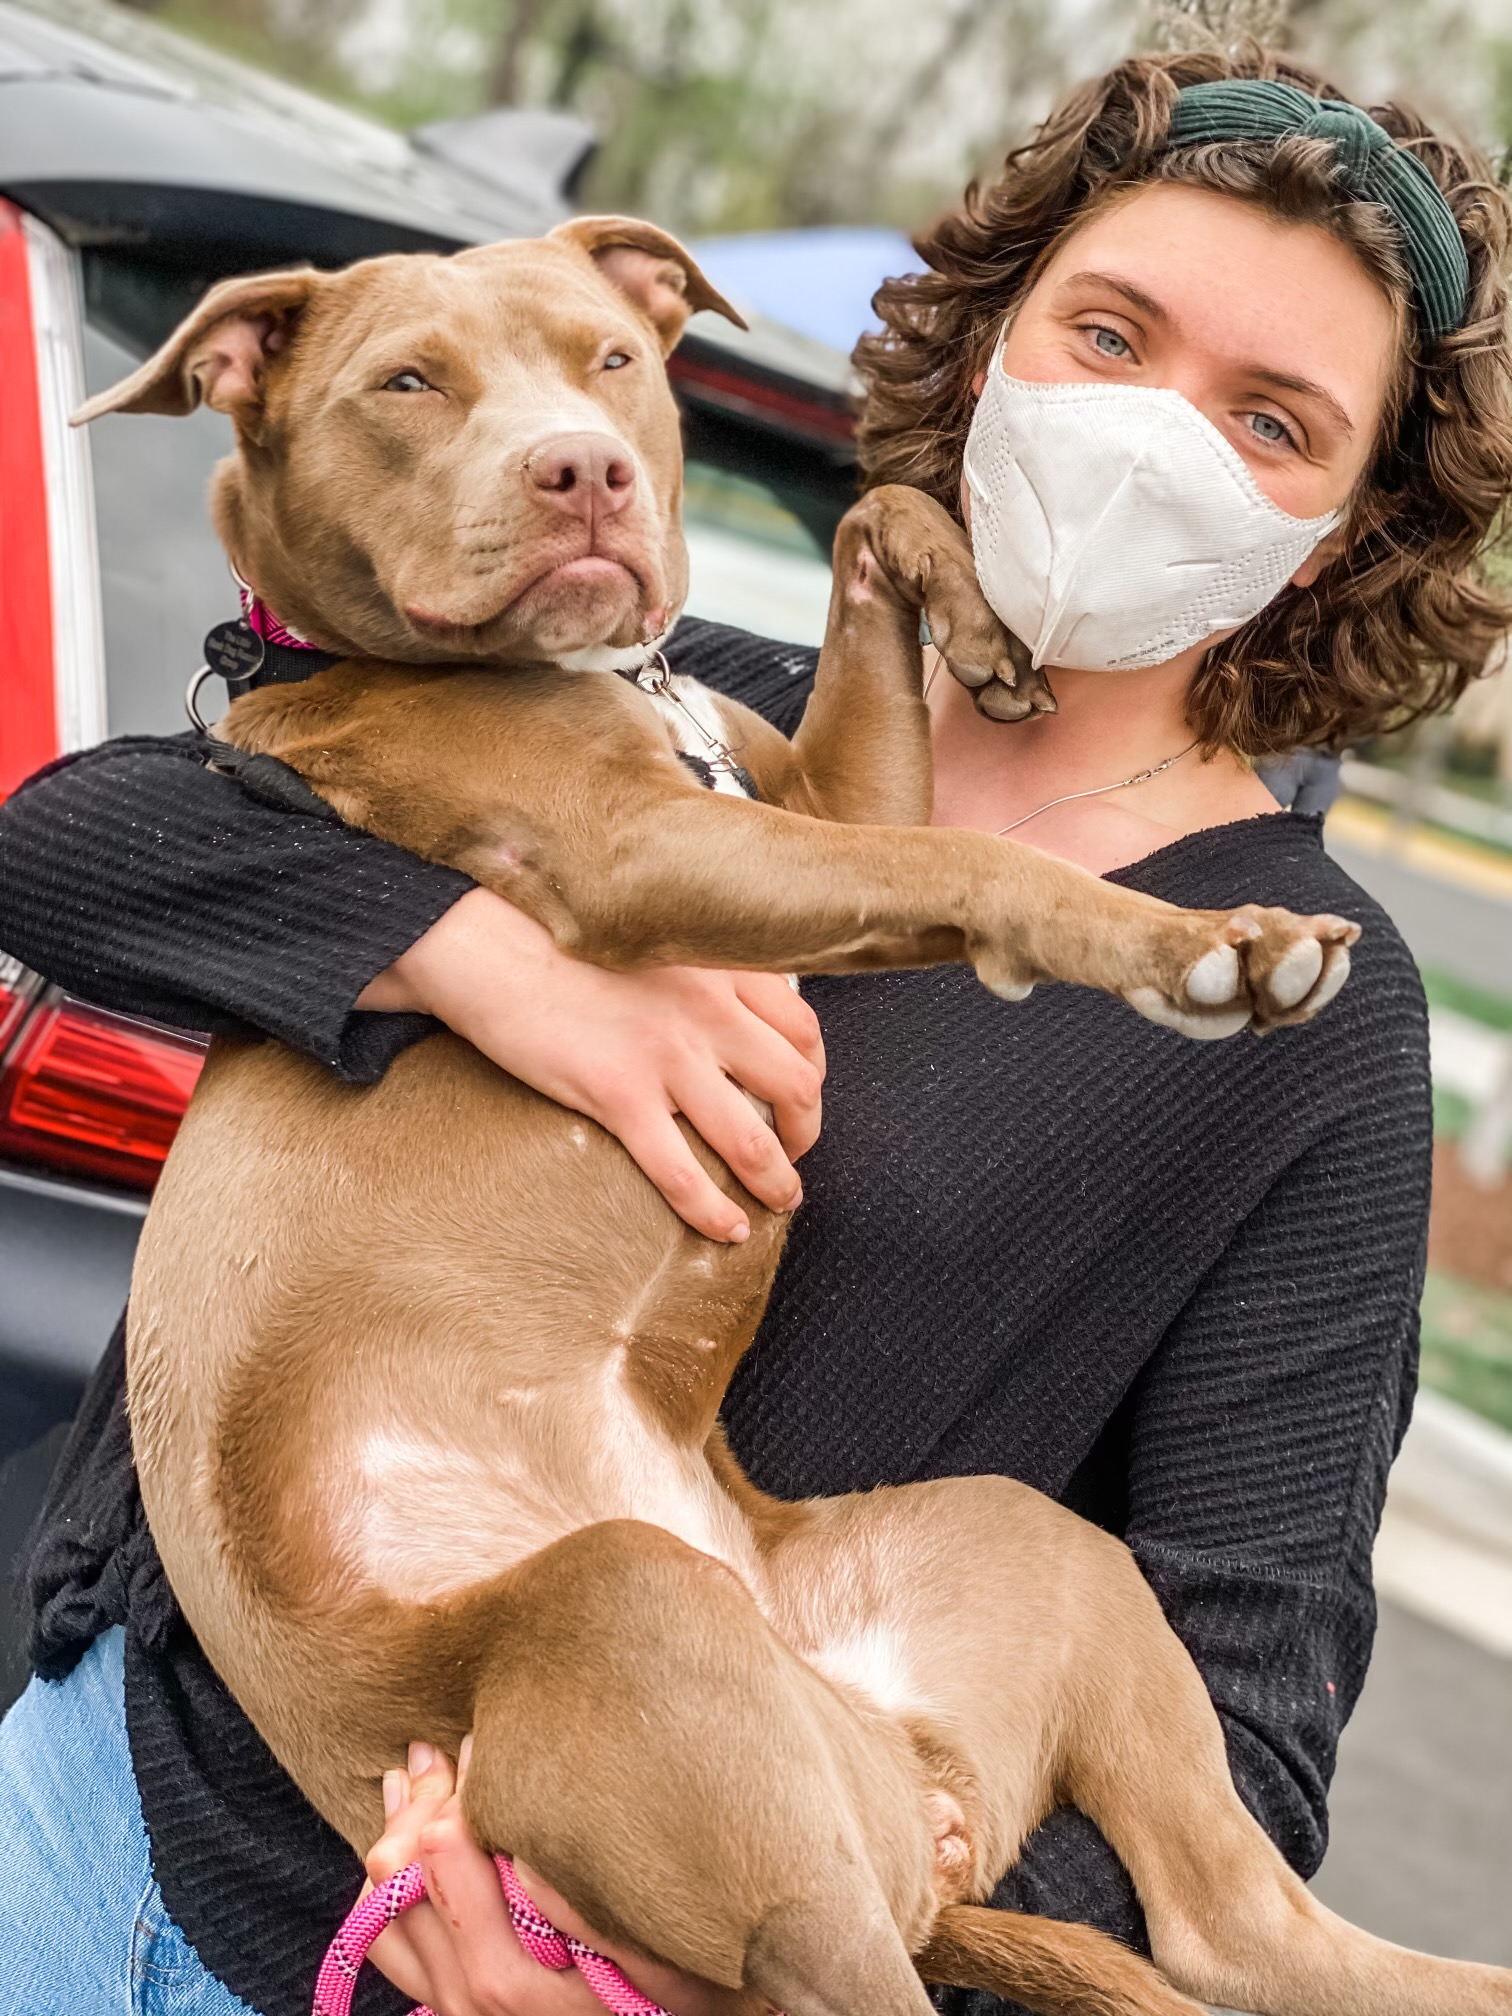 The Little Black Dog co-founder wearing mask and holding tan dog in her arms